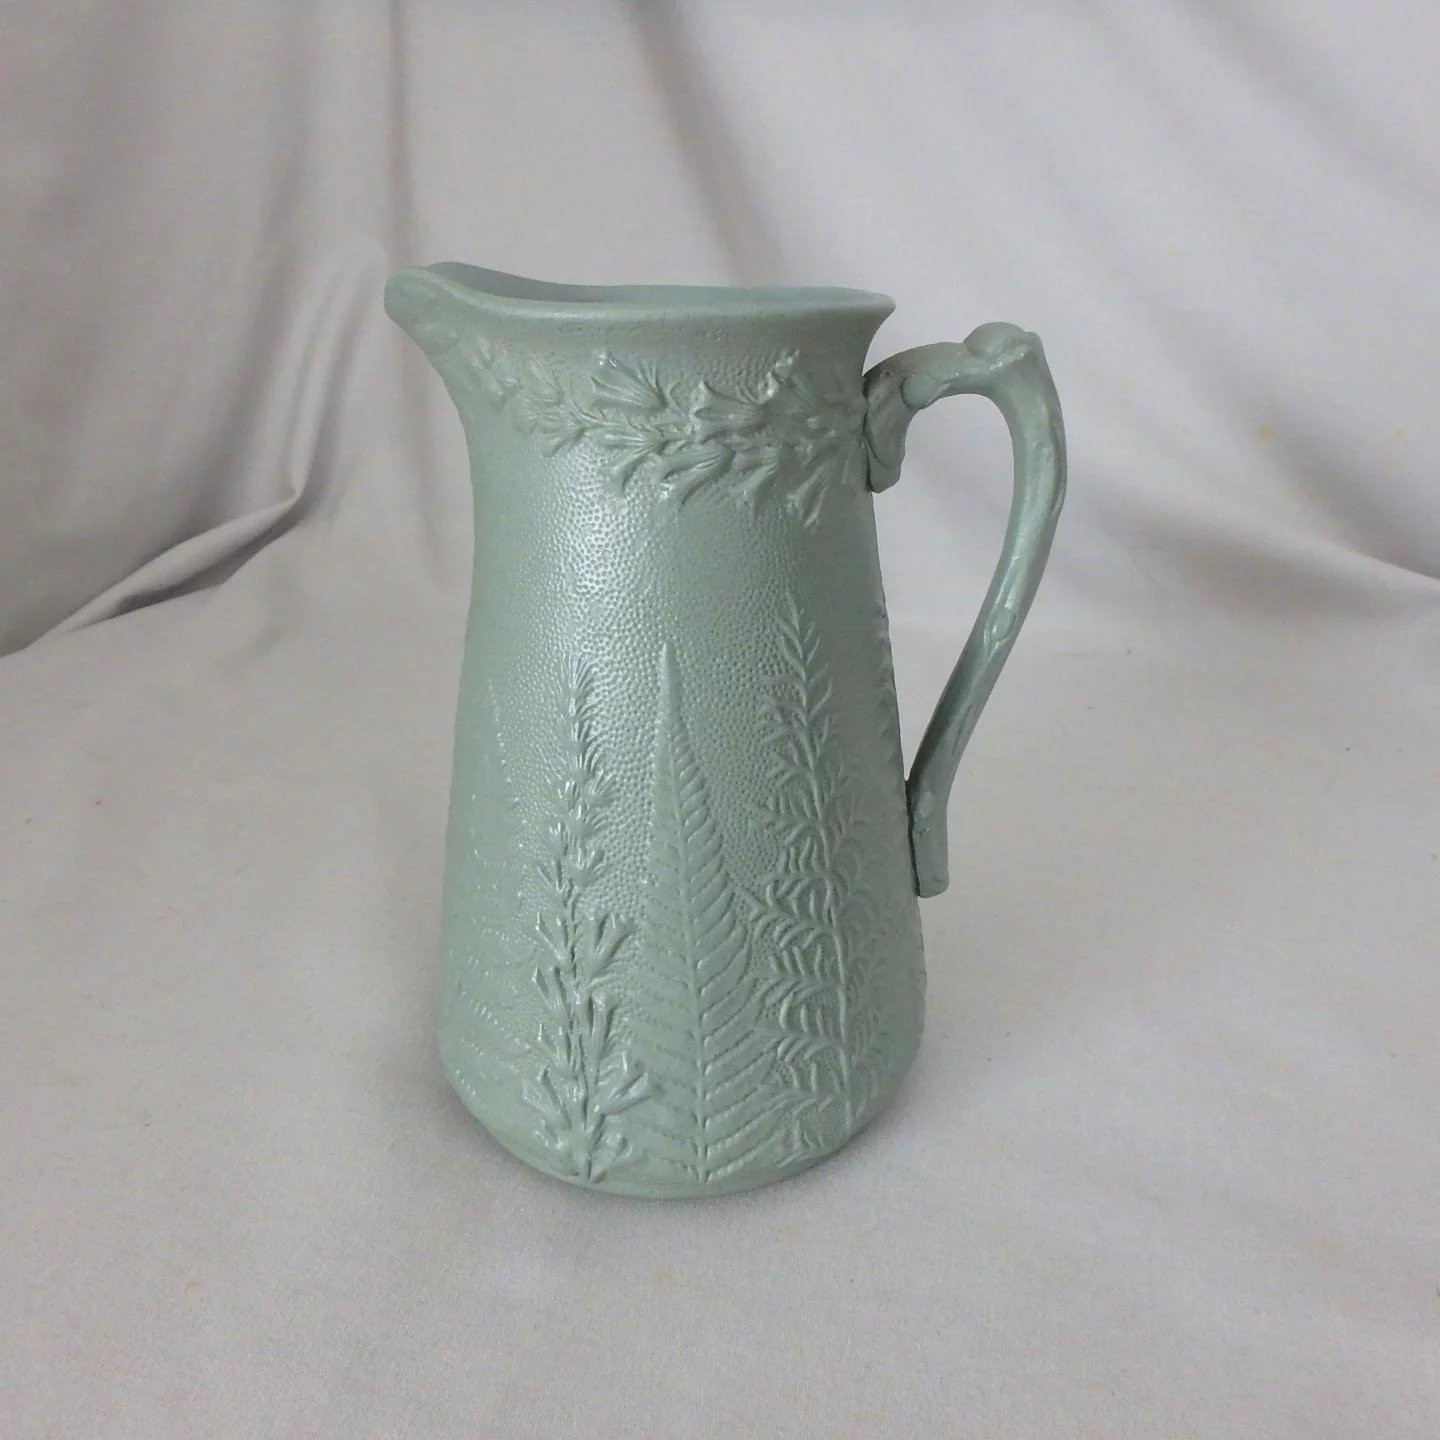 Antique Green Pottery Vase Of Antique 19th C W Ridgway Co Green Salt Glaze Fern Foxglove Pertaining to Click to Expand